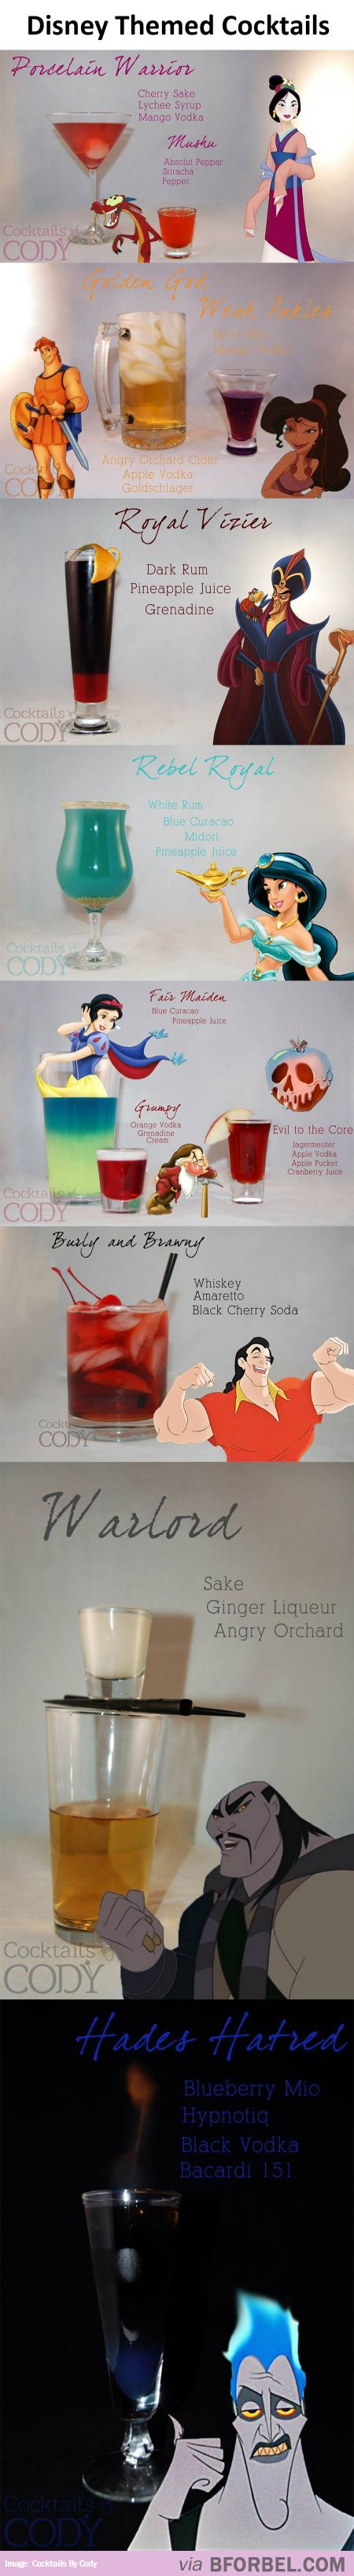 More Disney themed cocktails